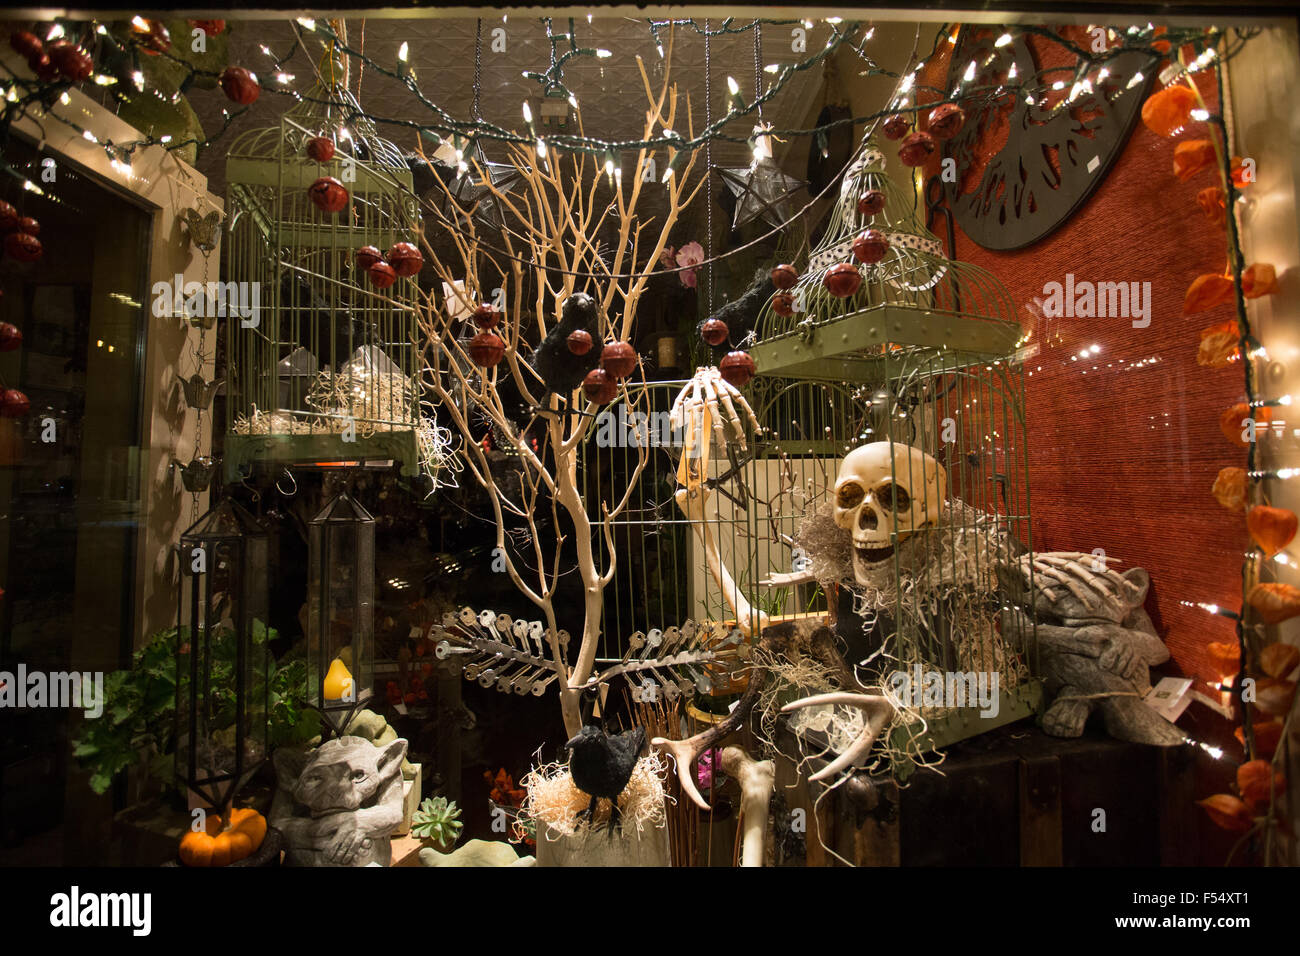 Decoration Halloween Vitrine Banque D Images Photo Stock 89233985